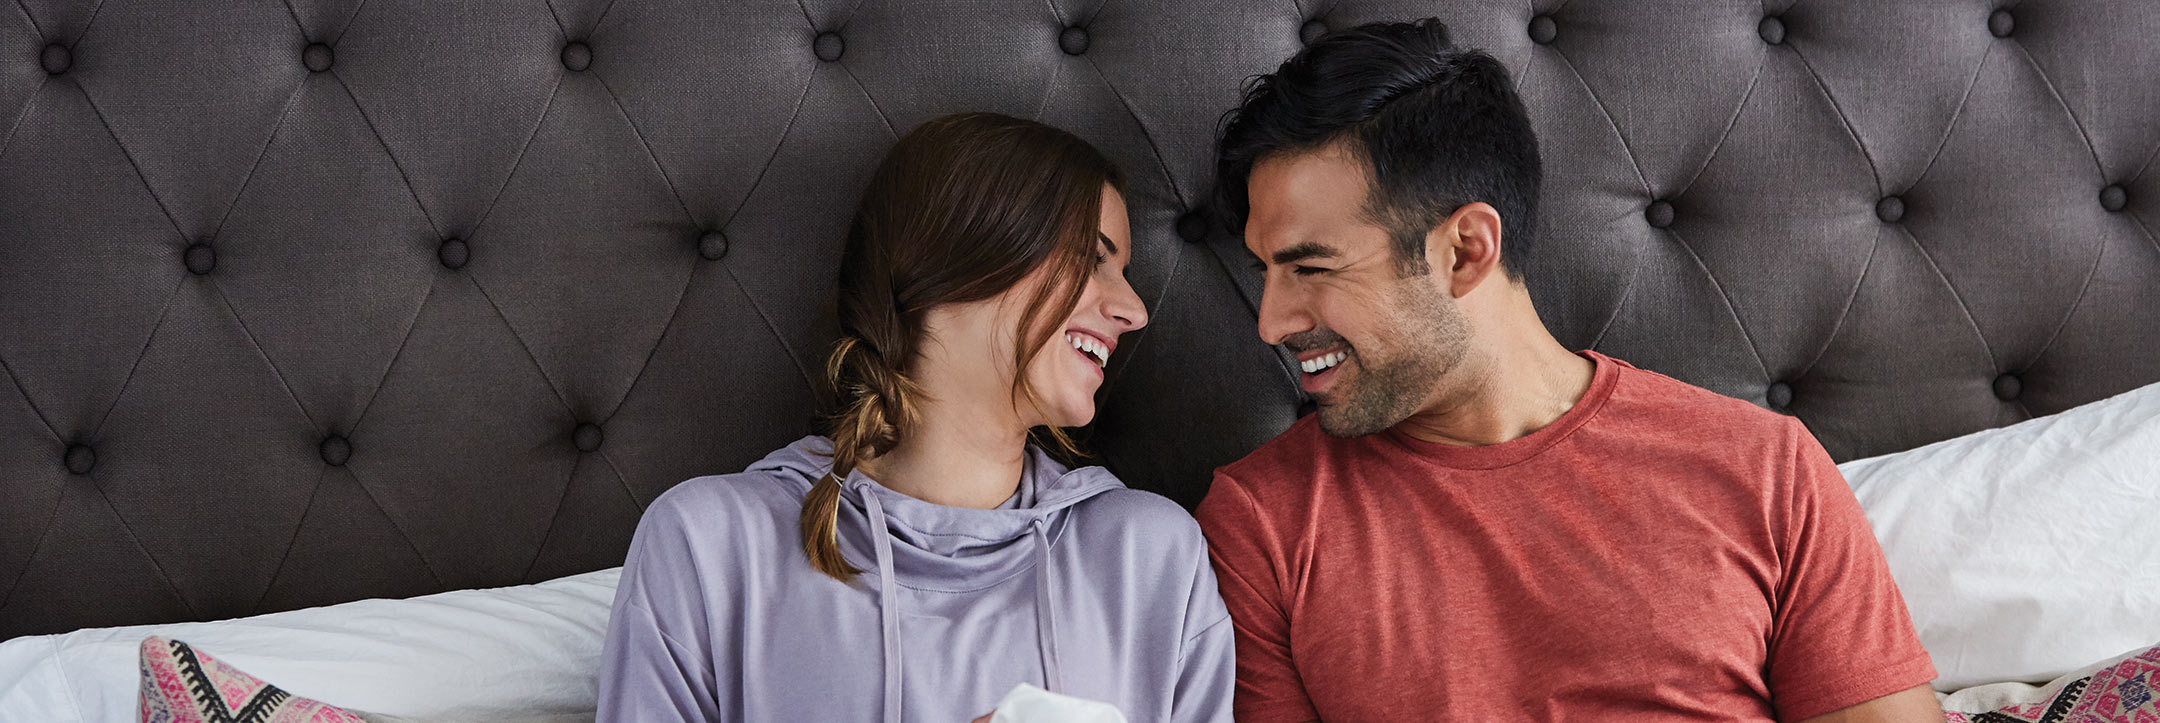 young couple laughing in bed